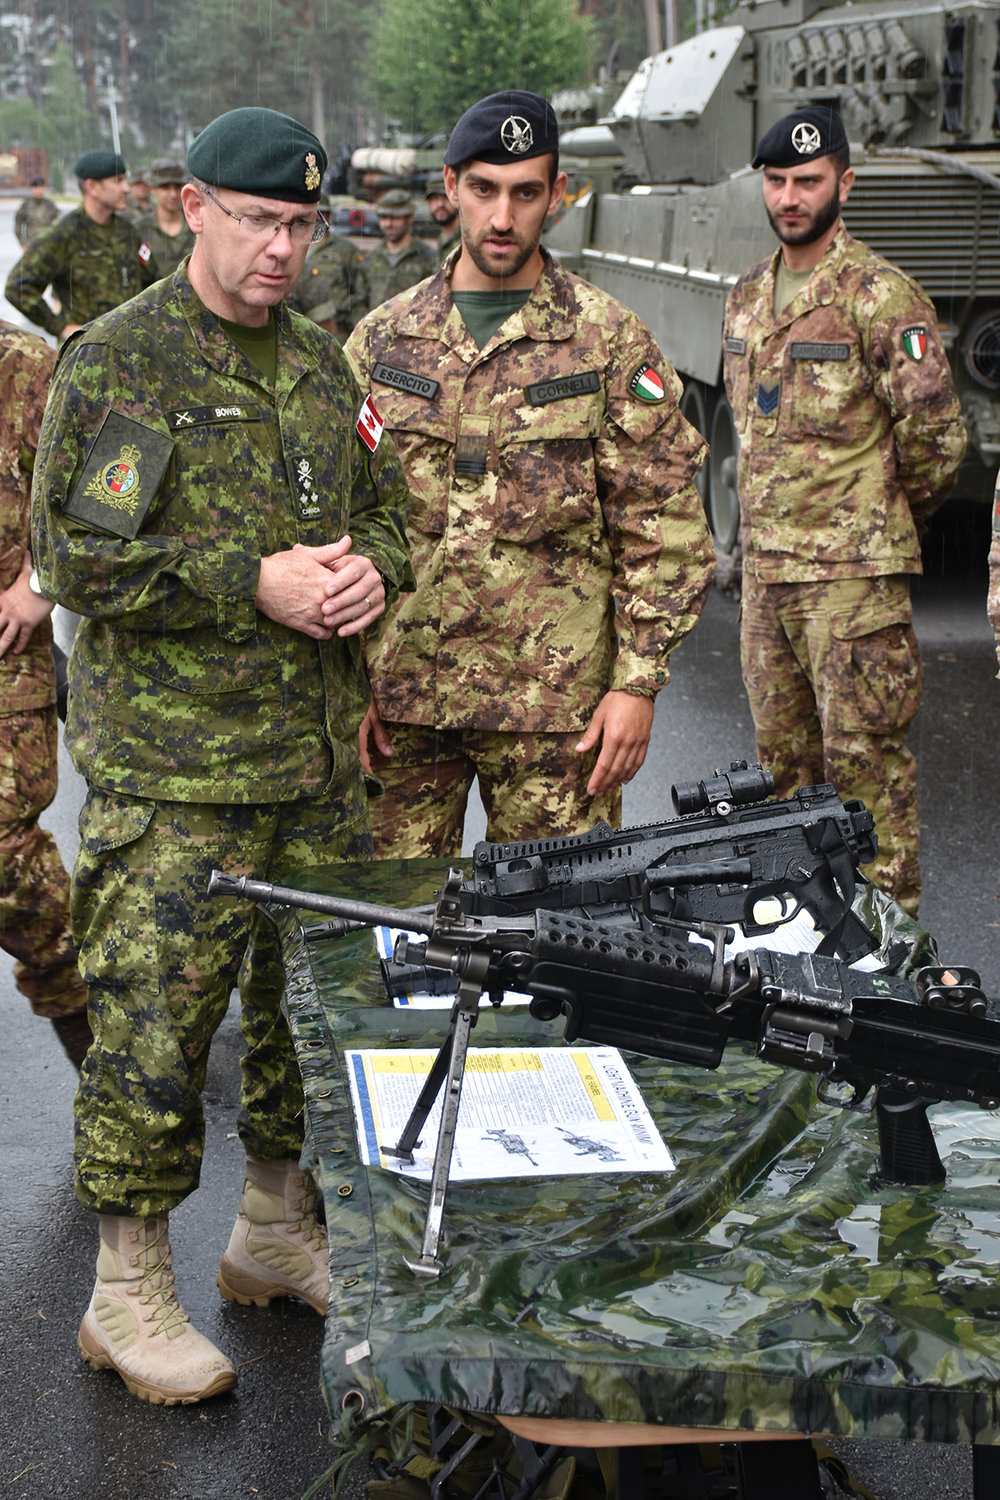 During his tour of a vehicle/equipment display, LGen Stephen Bowes was given a presentation on some of the weapons the Italian military (top right) is currently using in the Latvian theatre. (photos by mcpl gerald cormier, efp bg latvia public affairs, dnd)